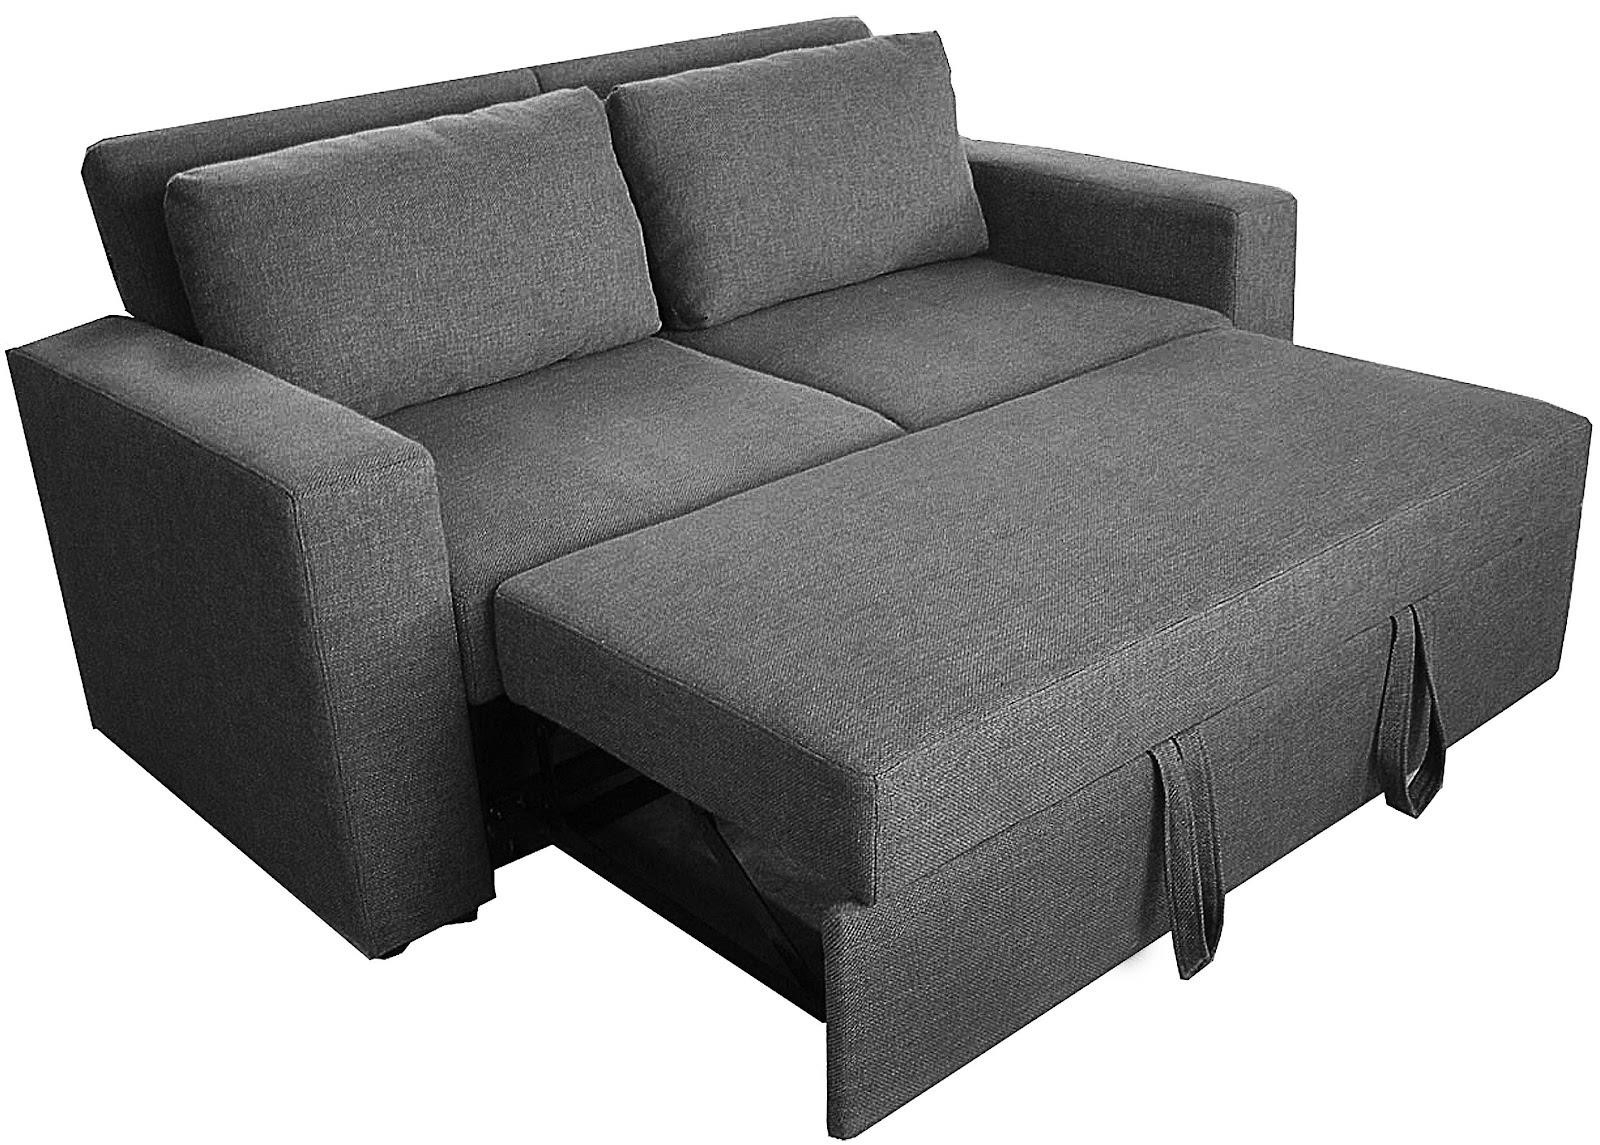 Most Popular Sofa : Loveseat With Pull Out Bed Trundle Beds Pull Out Couches Throughout Pull Out Sofa Chairs (View 11 of 15)